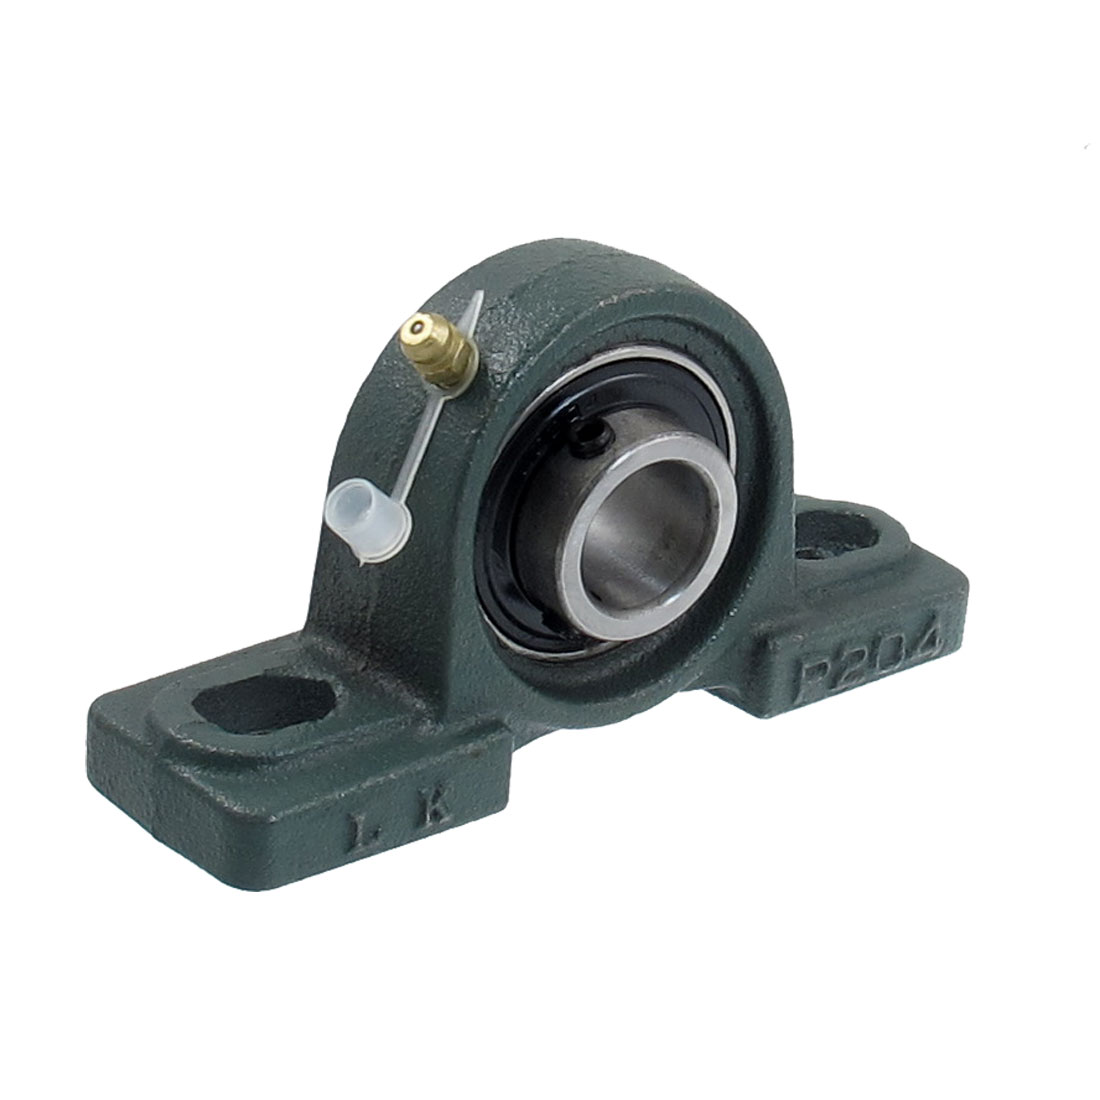 UCP204 20mm Mounted Block Cast Housing Self-aligning Pillow Bearing